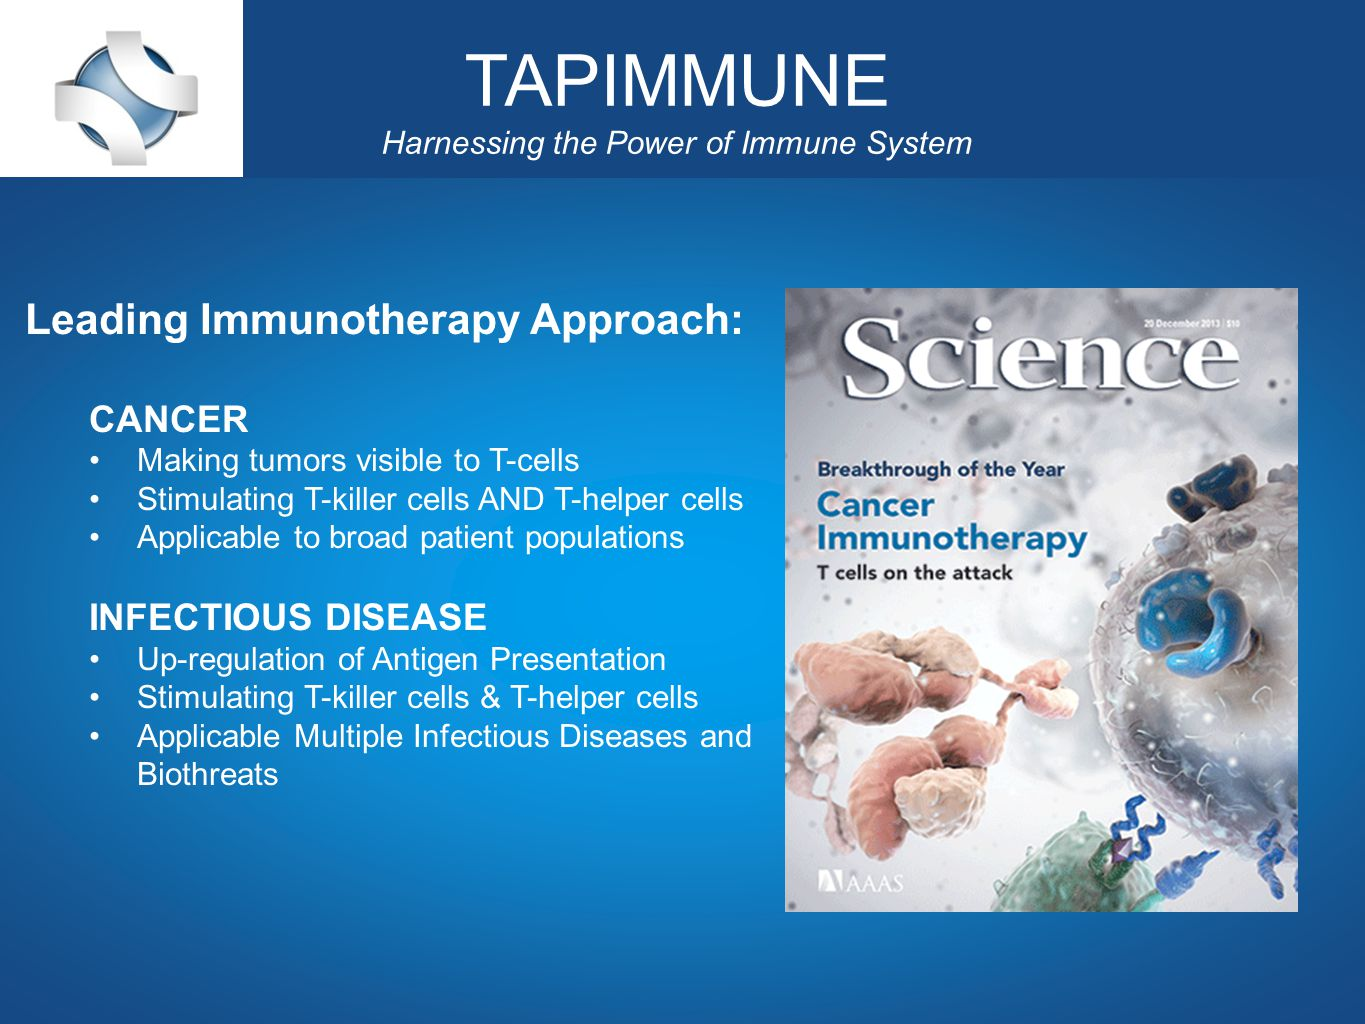 Corporate Presentation July 2012 Leading Immunotherapy Approach: CANCER Making tumors visible to T-cells Stimulating T-killer cells AND T-helper cells Applicable to broad patient populations INFECTIOUS DISEASE Up-regulation of Antigen Presentation Stimulating T-killer cells & T-helper cells Applicable Multiple Infectious Diseases and Biothreats TAPIMMUNE Harnessing the Power of Immune System